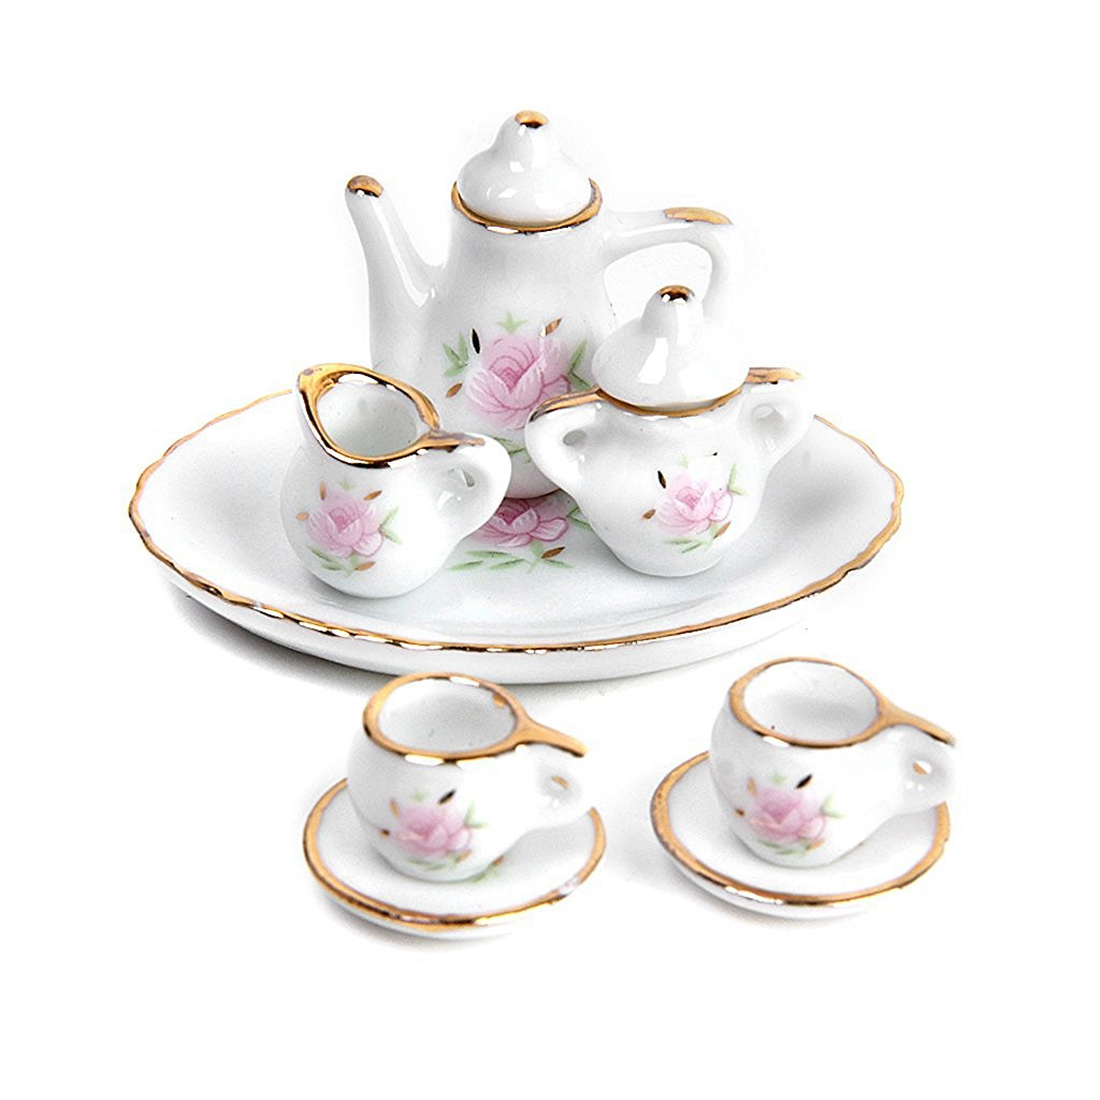 FBIL-8 Pcs. Dollhouse Miniature Restaurants Goods Porcelain Tea Set Plate Cup Plate Flower Print